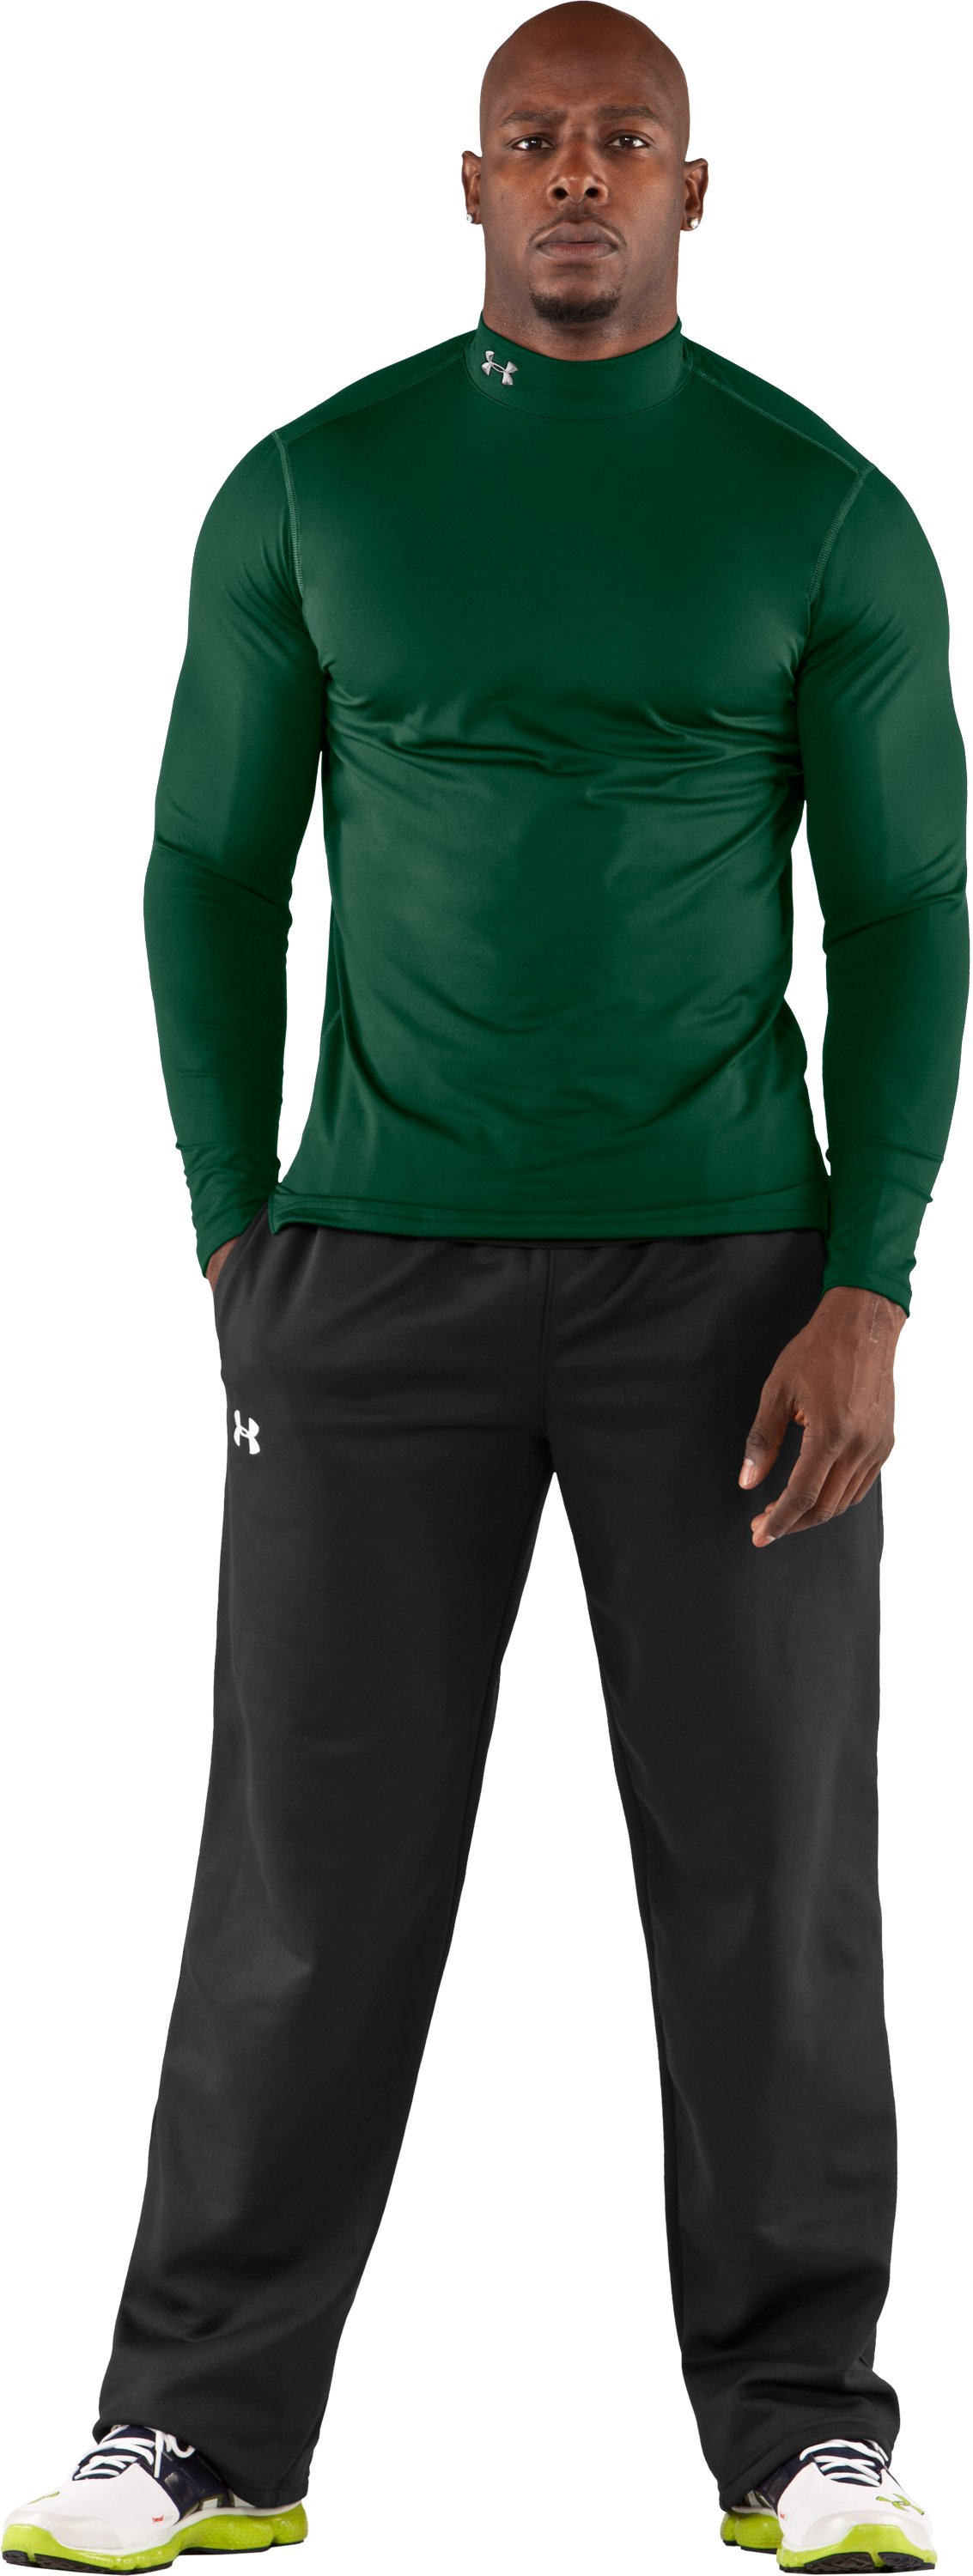 Men's ColdGear® Fitted Long Sleeve Mock, Forest Green, zoomed image